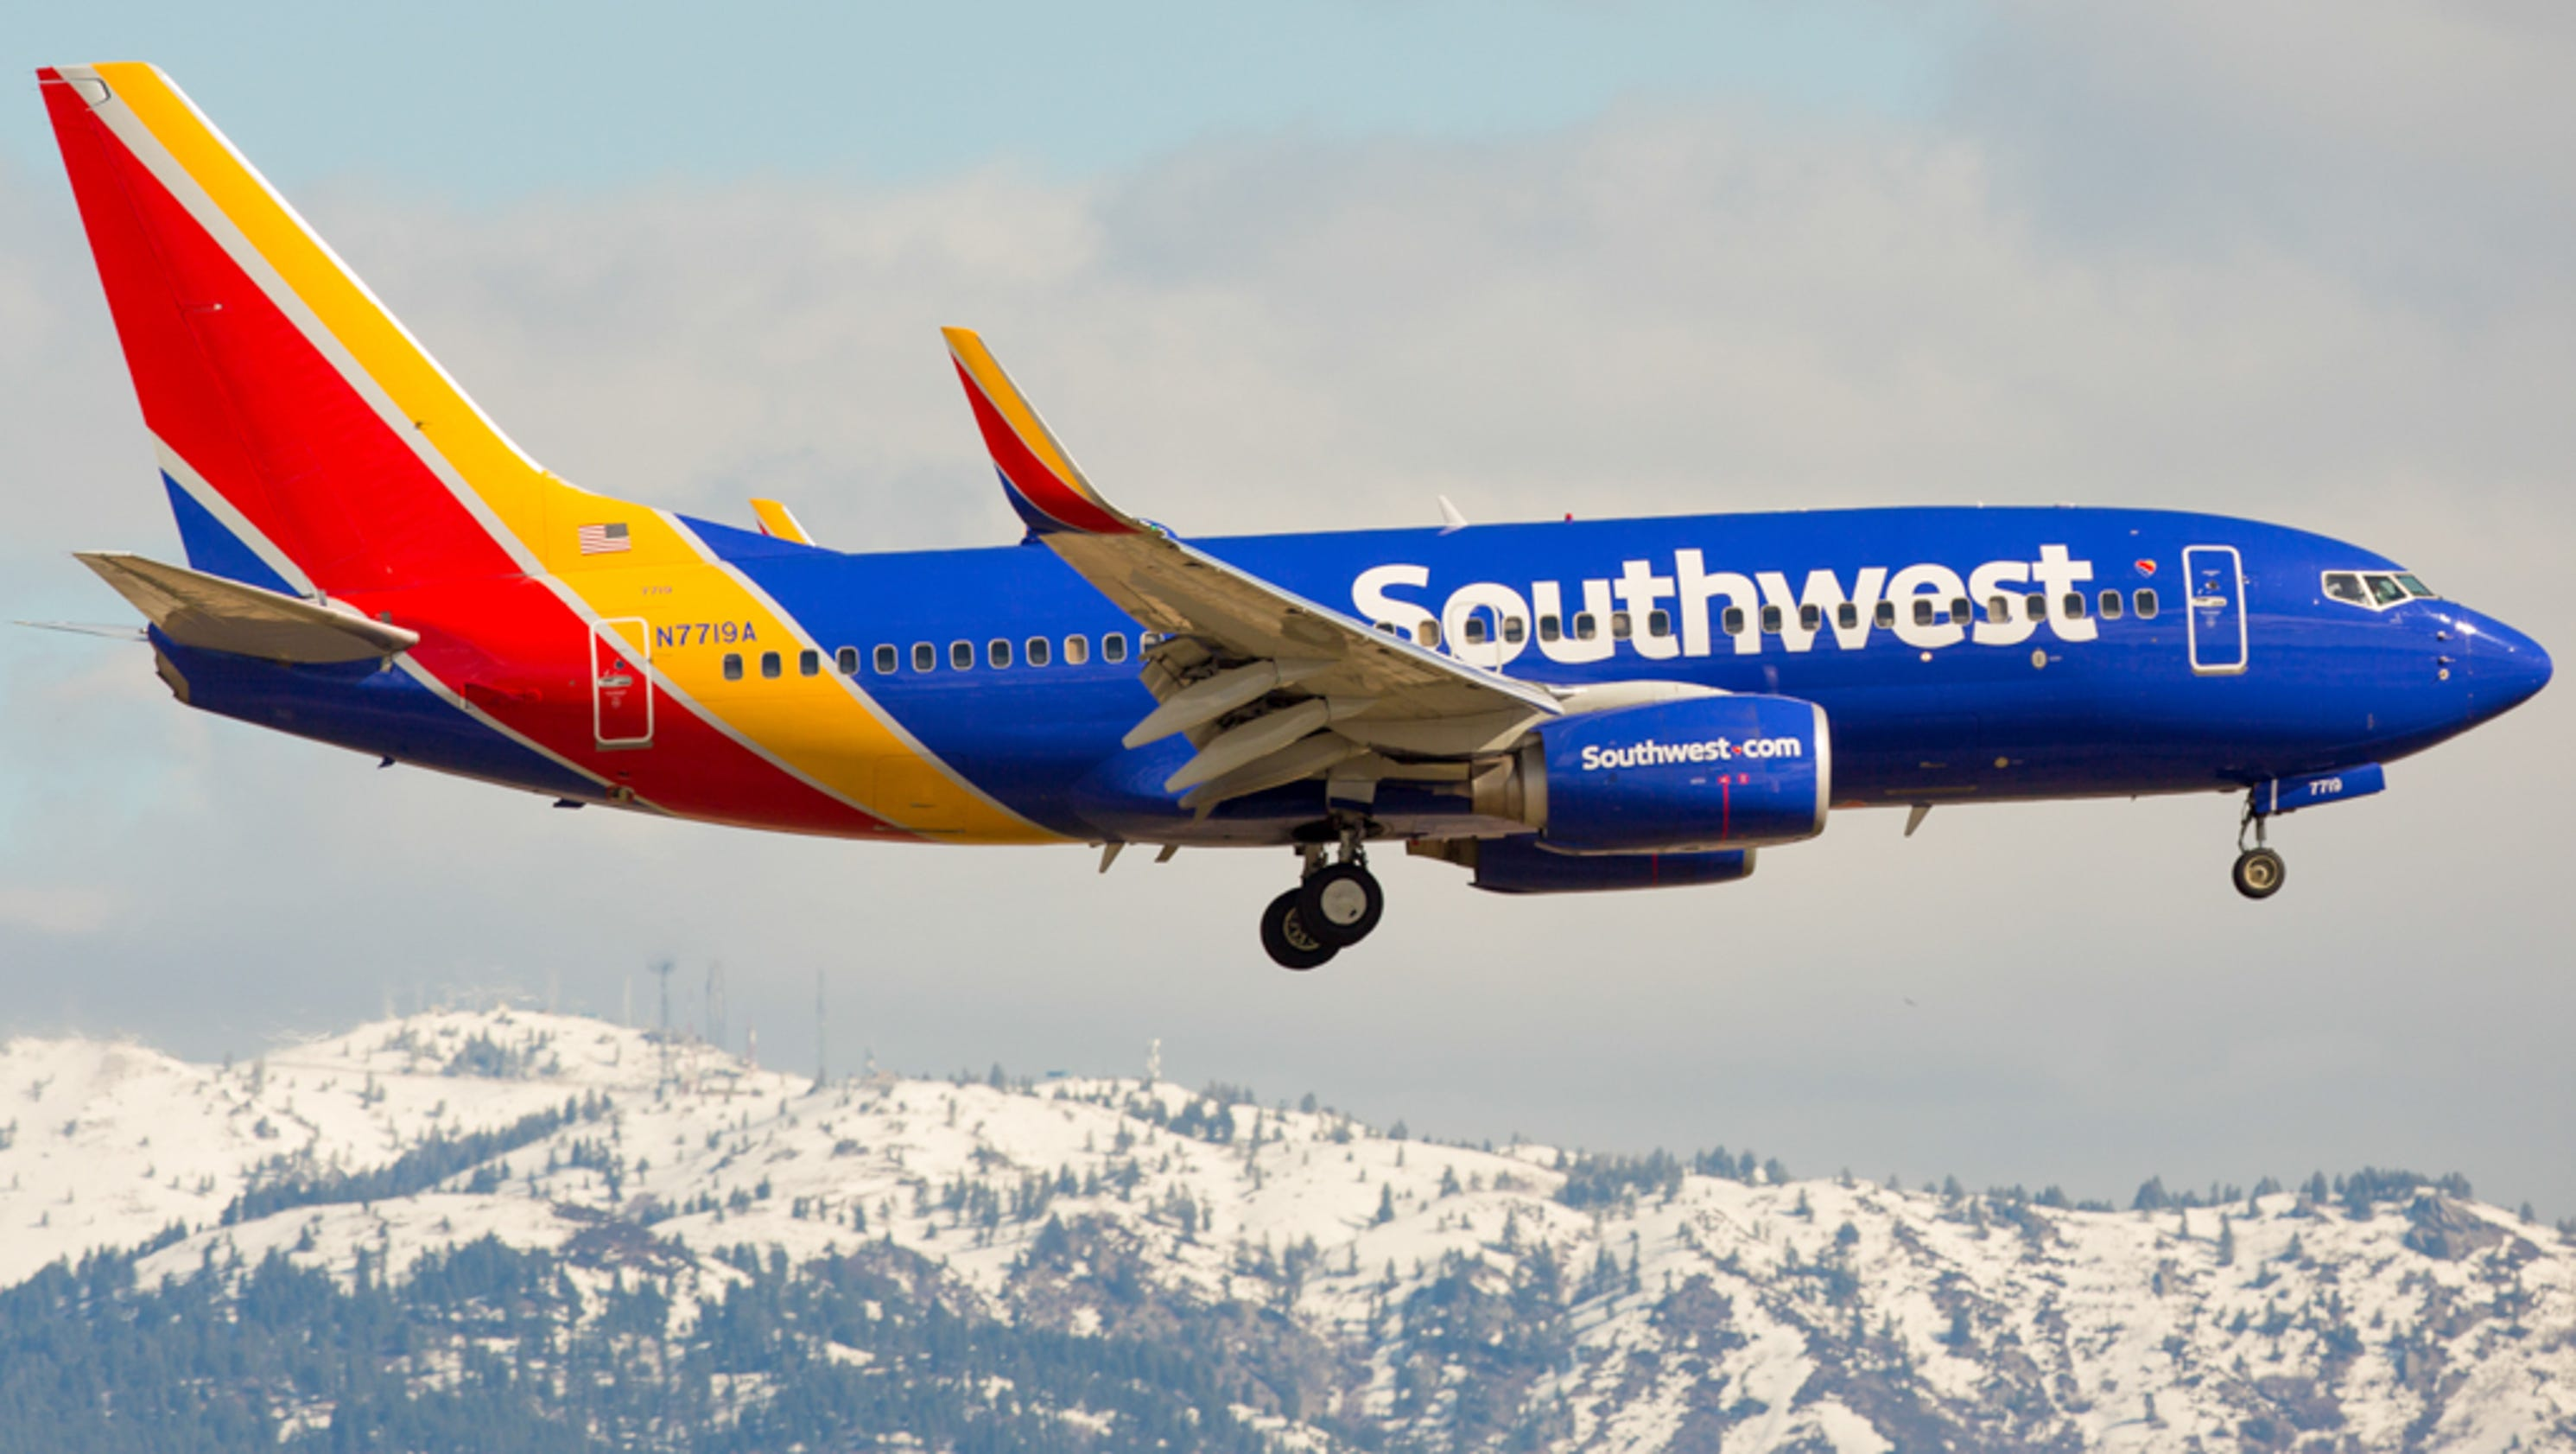 Southwest elite frequent fliers hit by computer glitch will get southwest elite frequent fliers hit by computer glitch will get bonus points buycottarizona